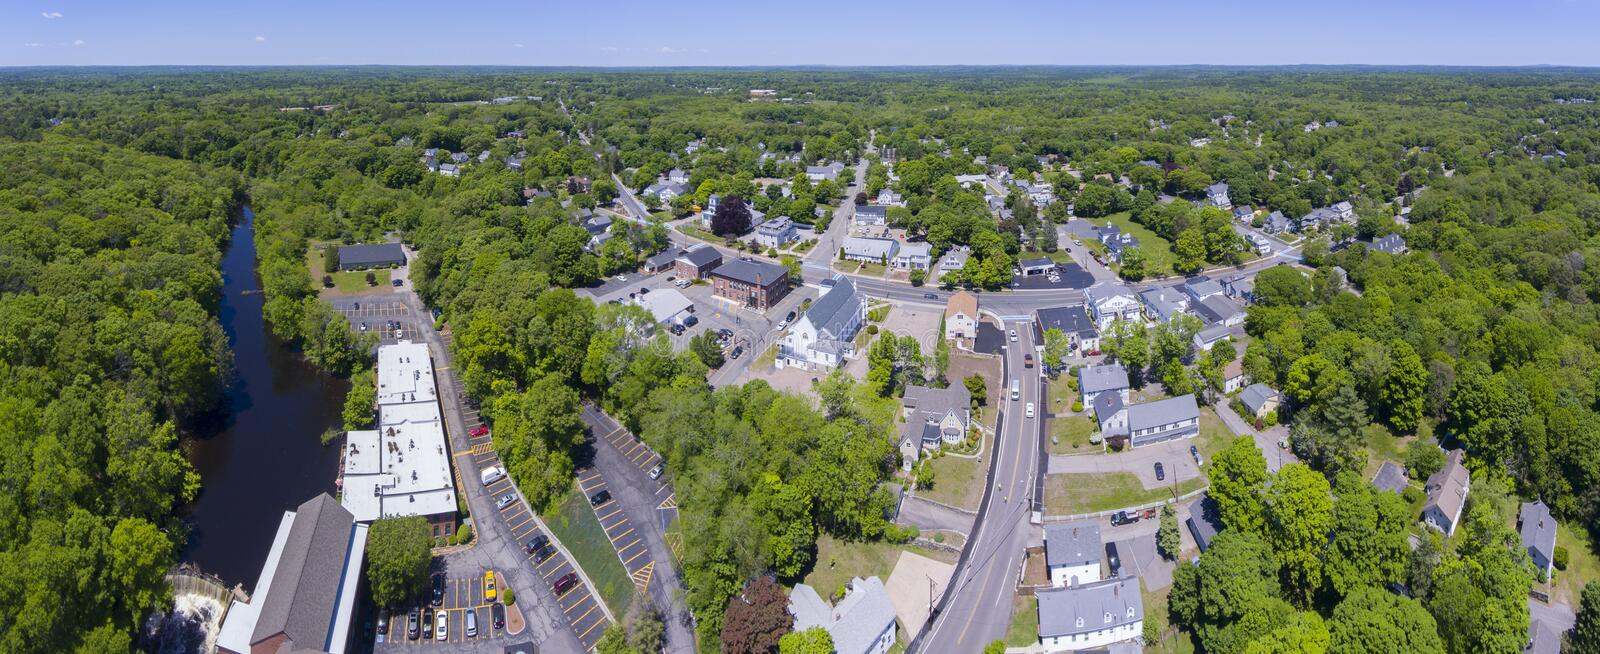 Medway town center panorama, Massachusetts, USA. Medway town center aerial view panorama including Sandford Mill on Charles River, town center and Village Street stock photography